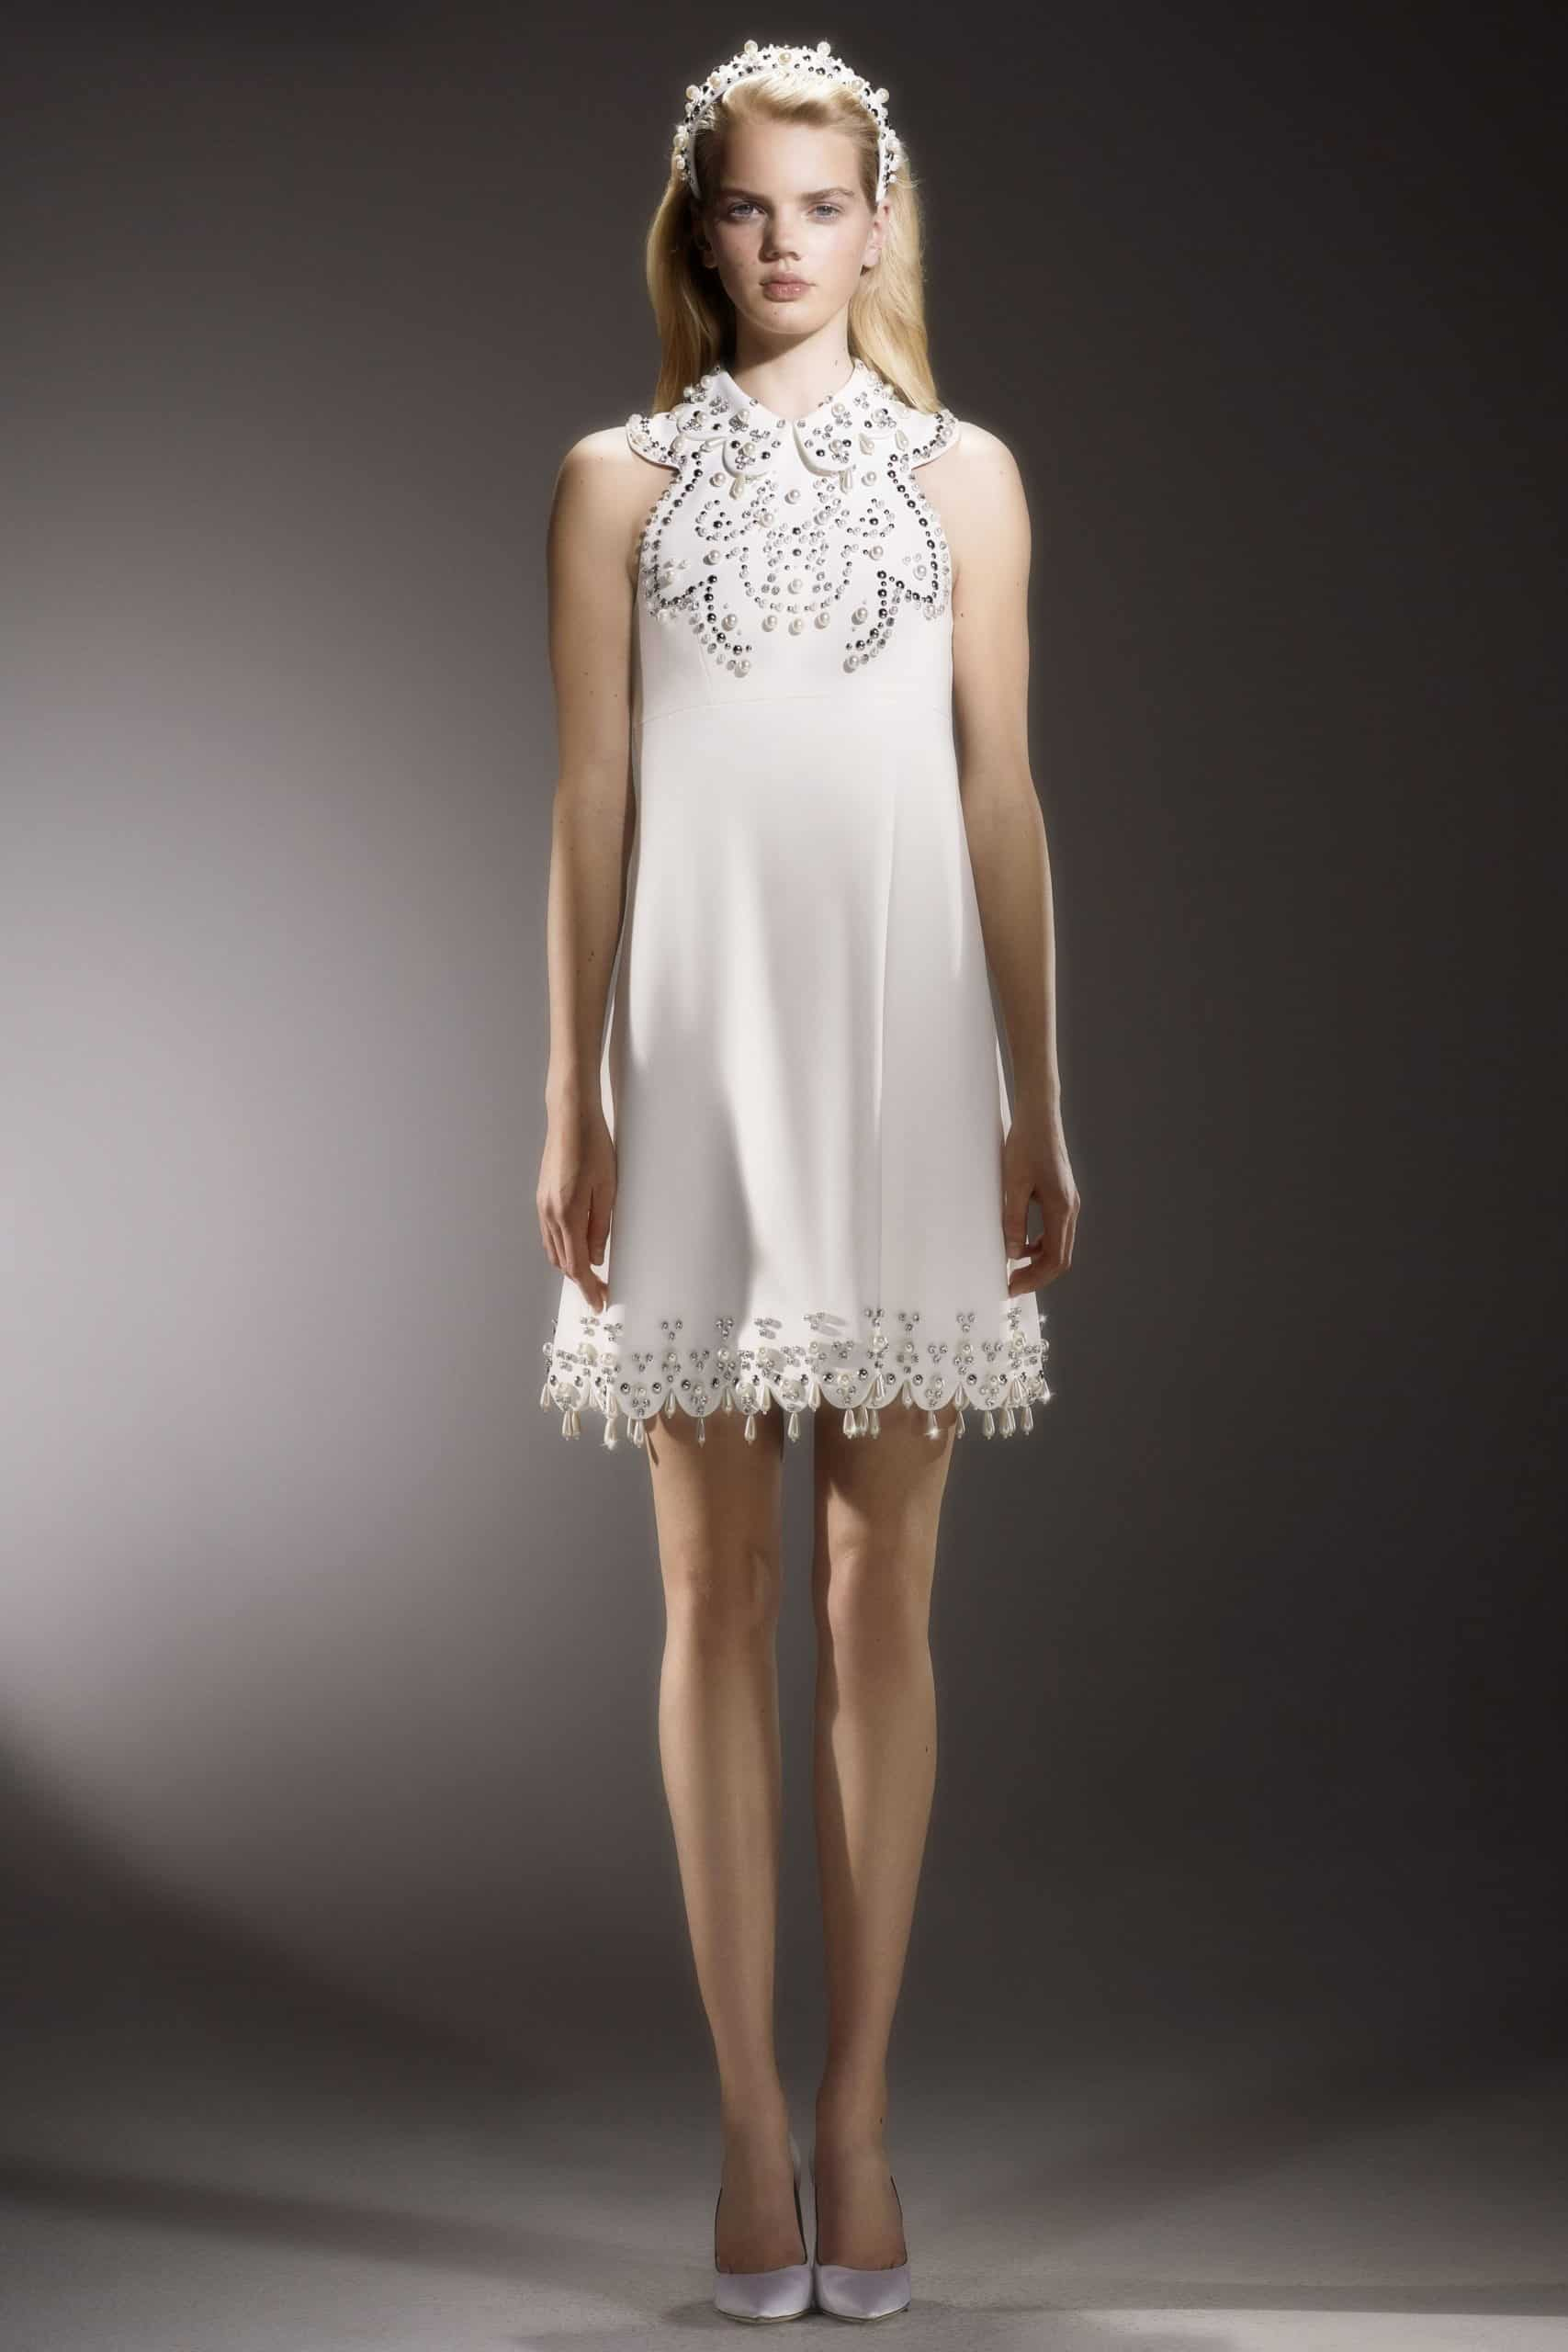 short wedding dress with diamonds by Viktor and Rolf